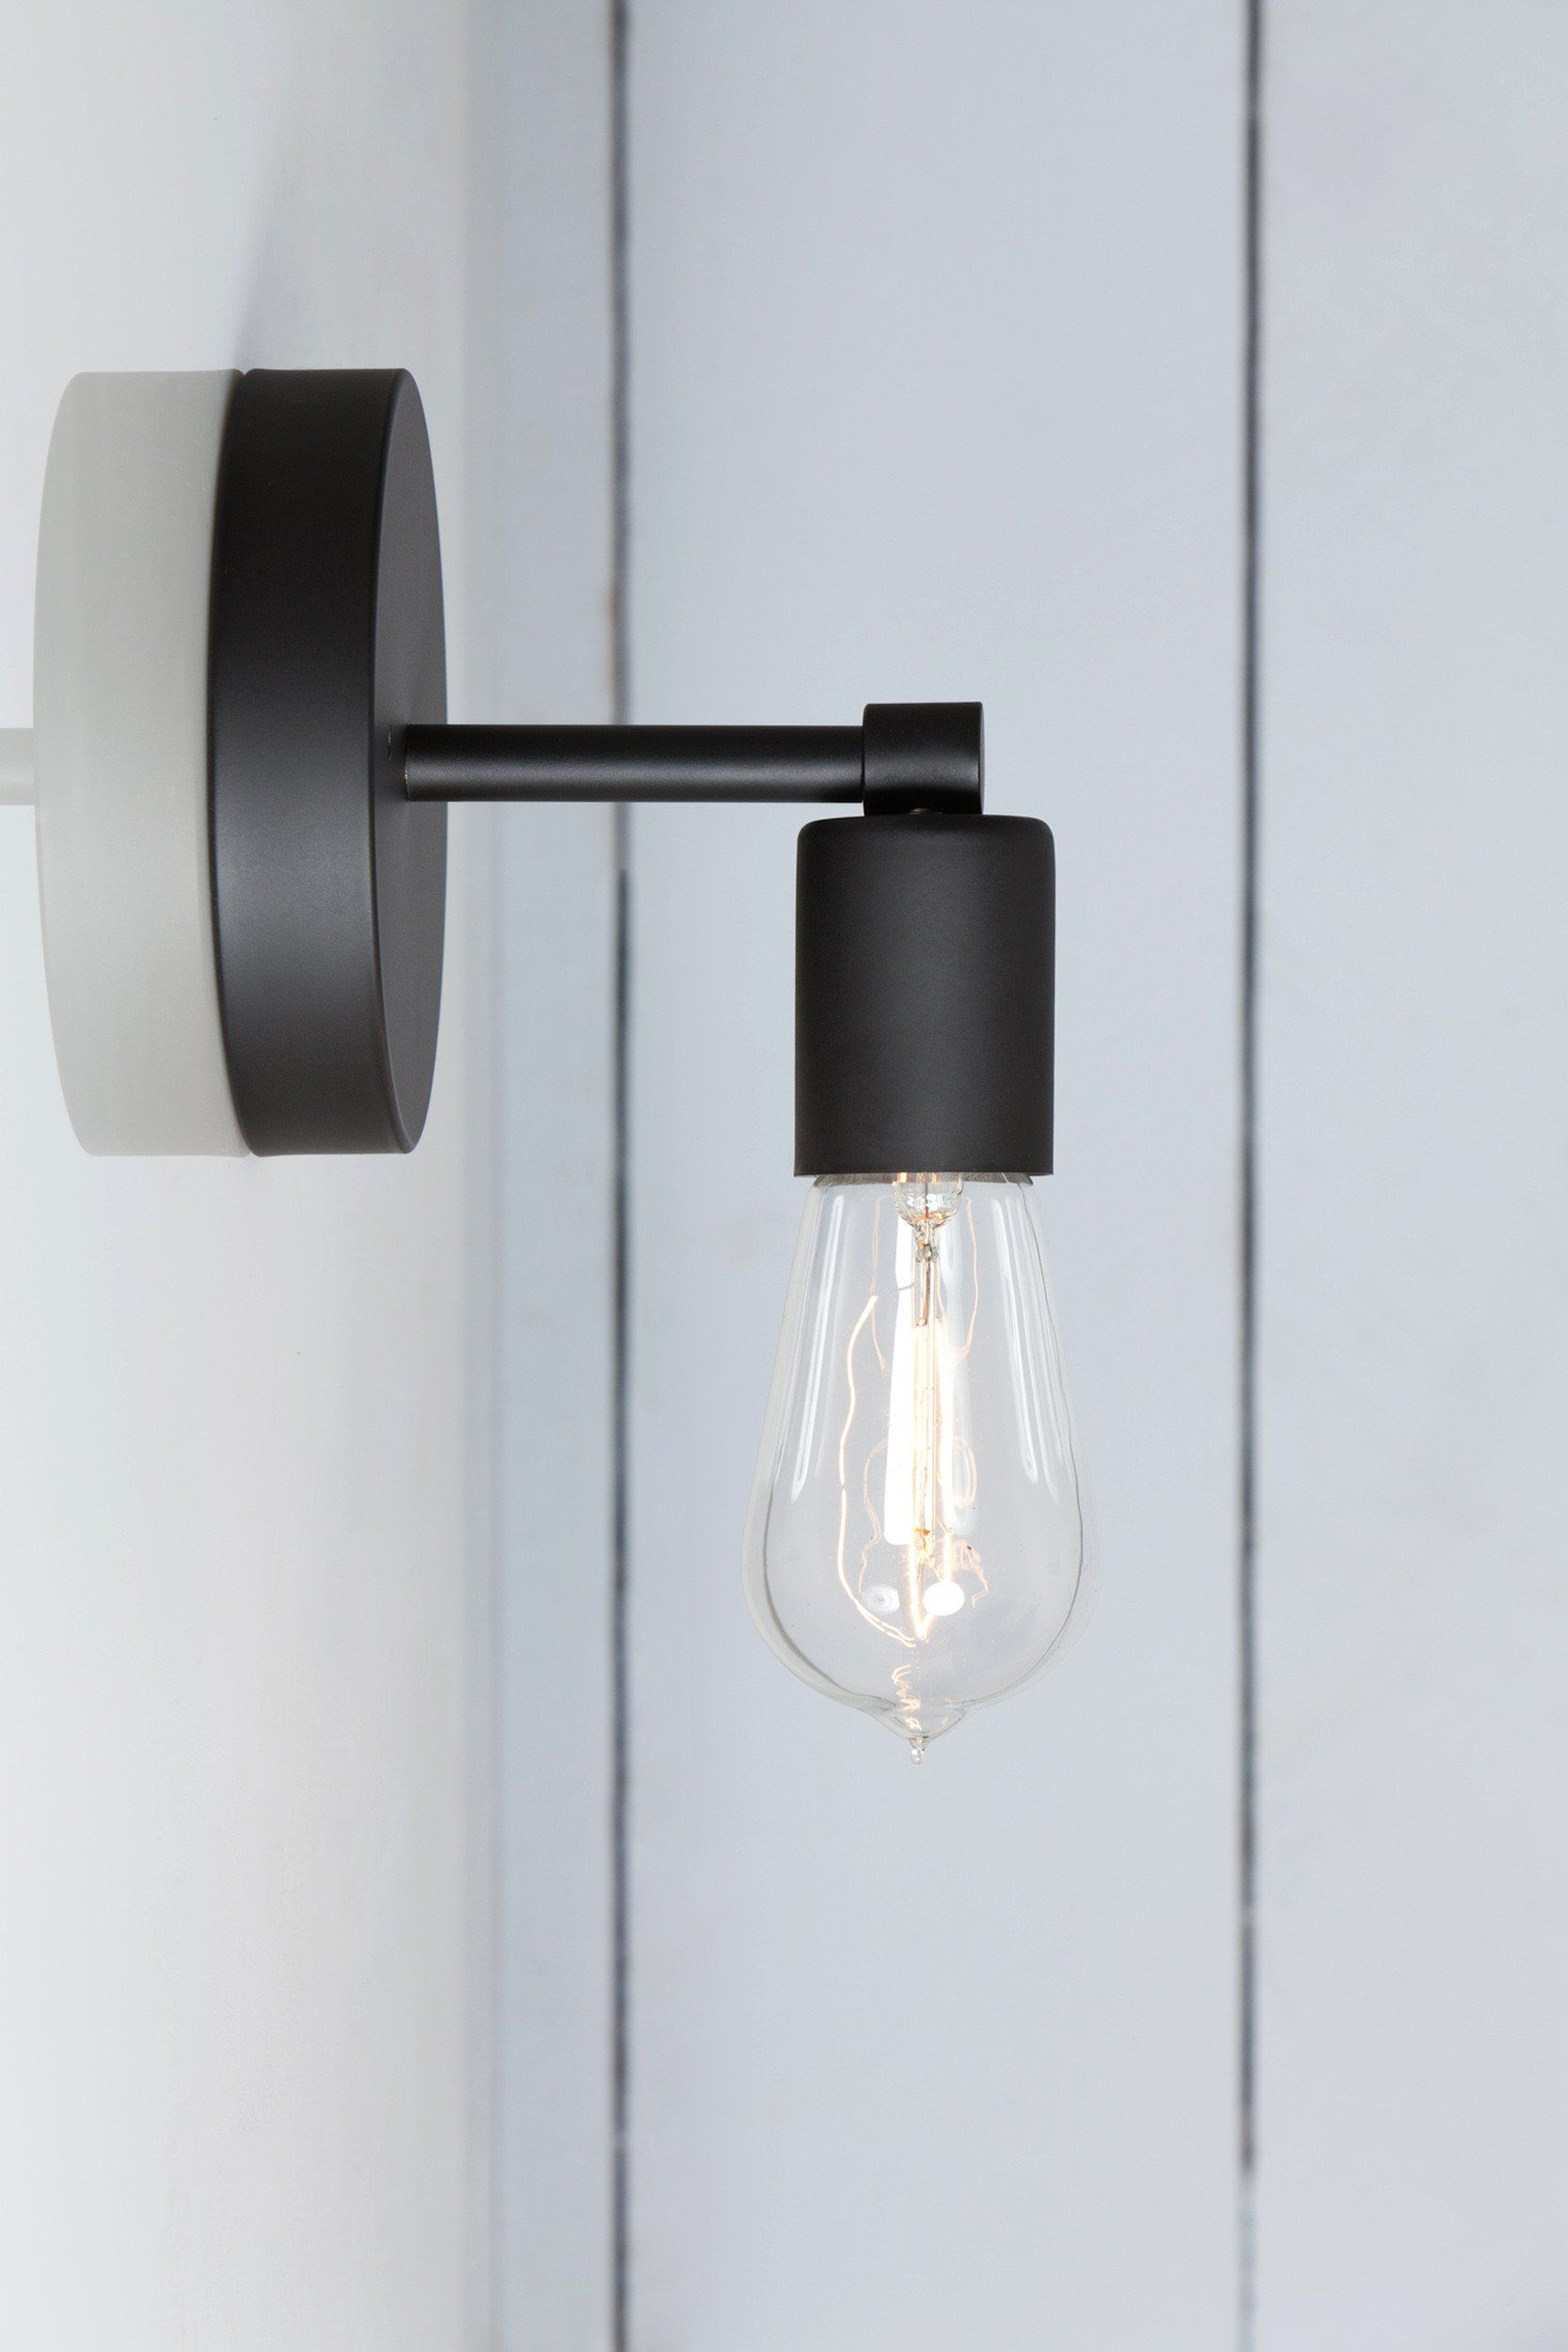 Pin On Industrial Wall Light